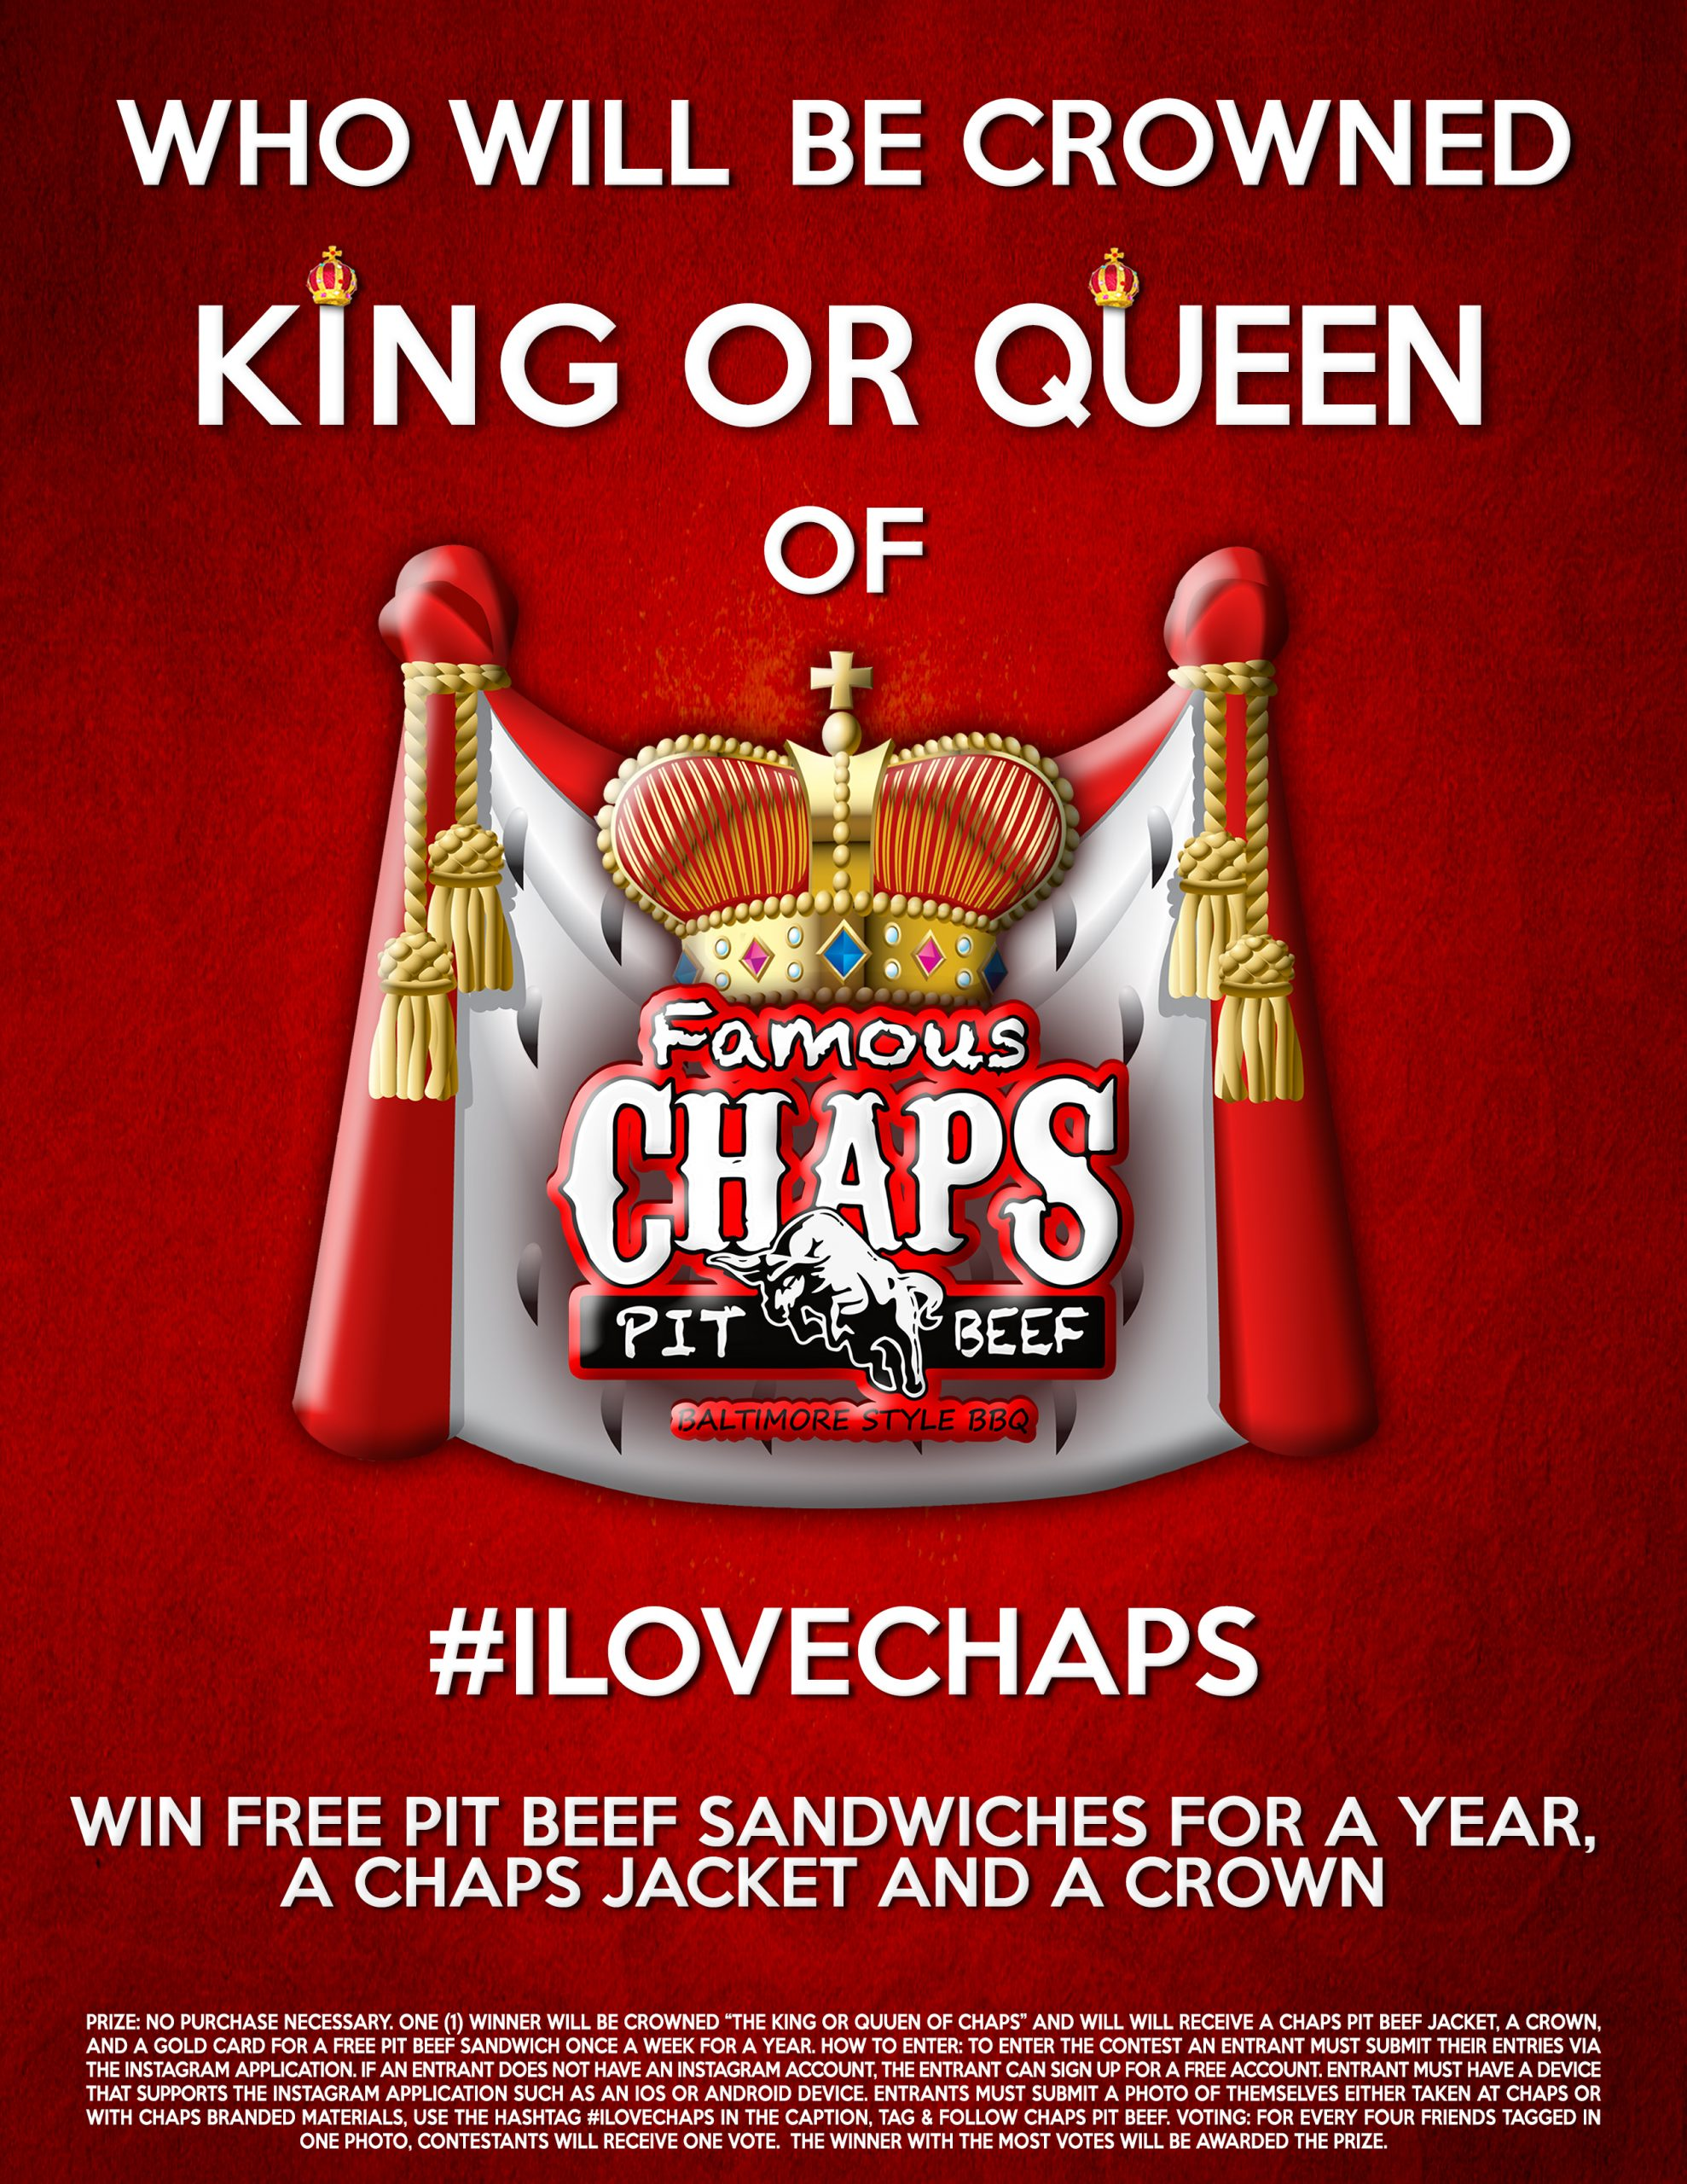 Win a Chaps Pit Beef Sandwich Once a Week for a Whole Year!